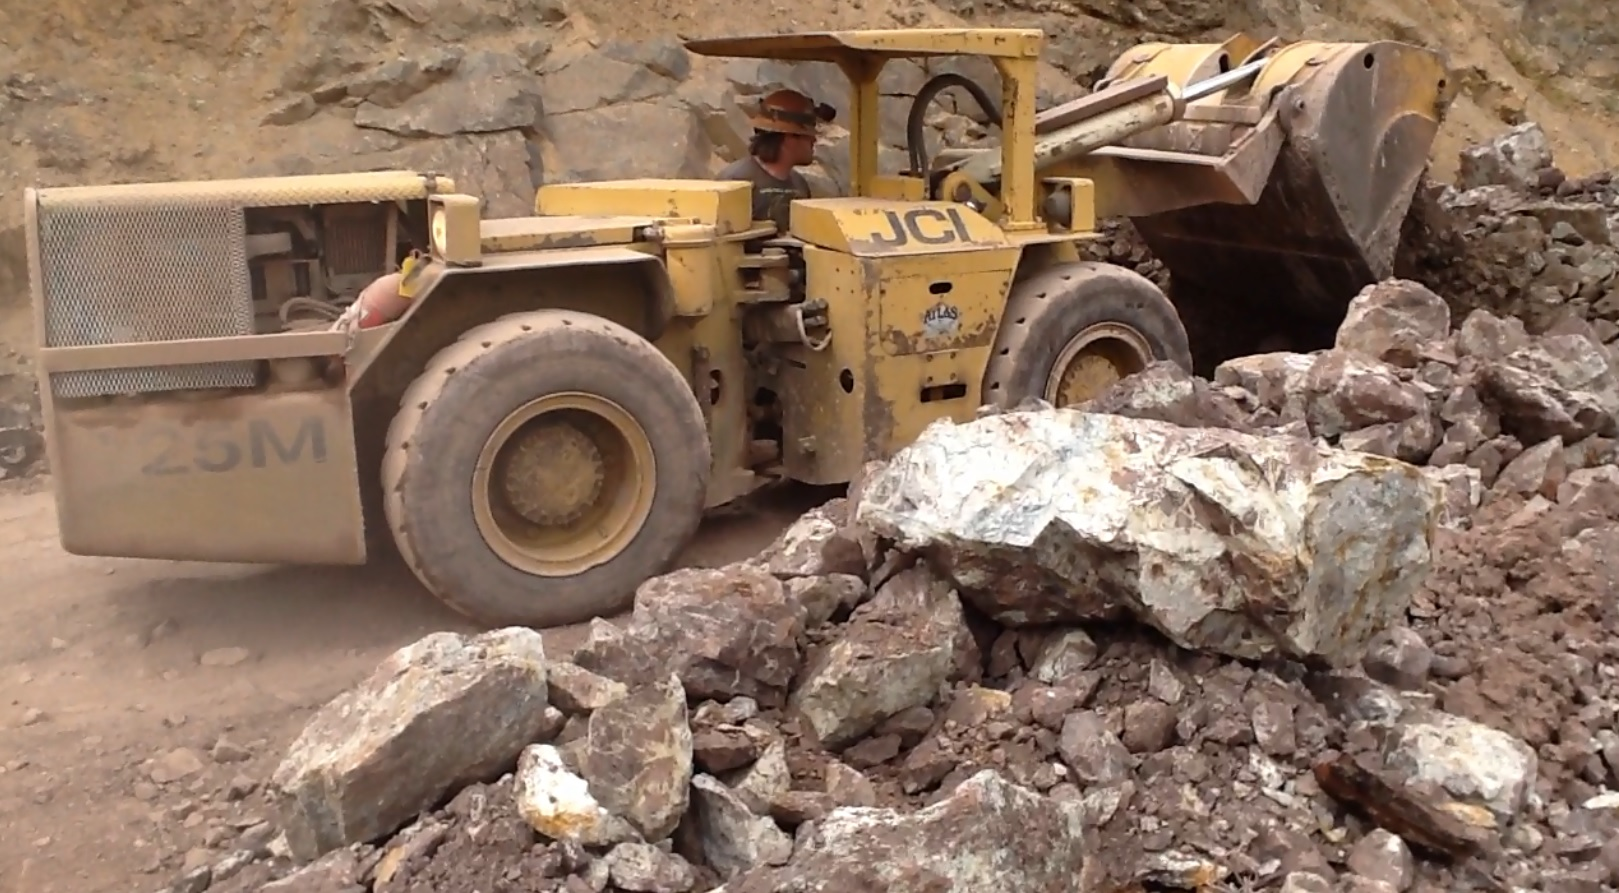 Extracting mineralized material from the Bayhorse mine